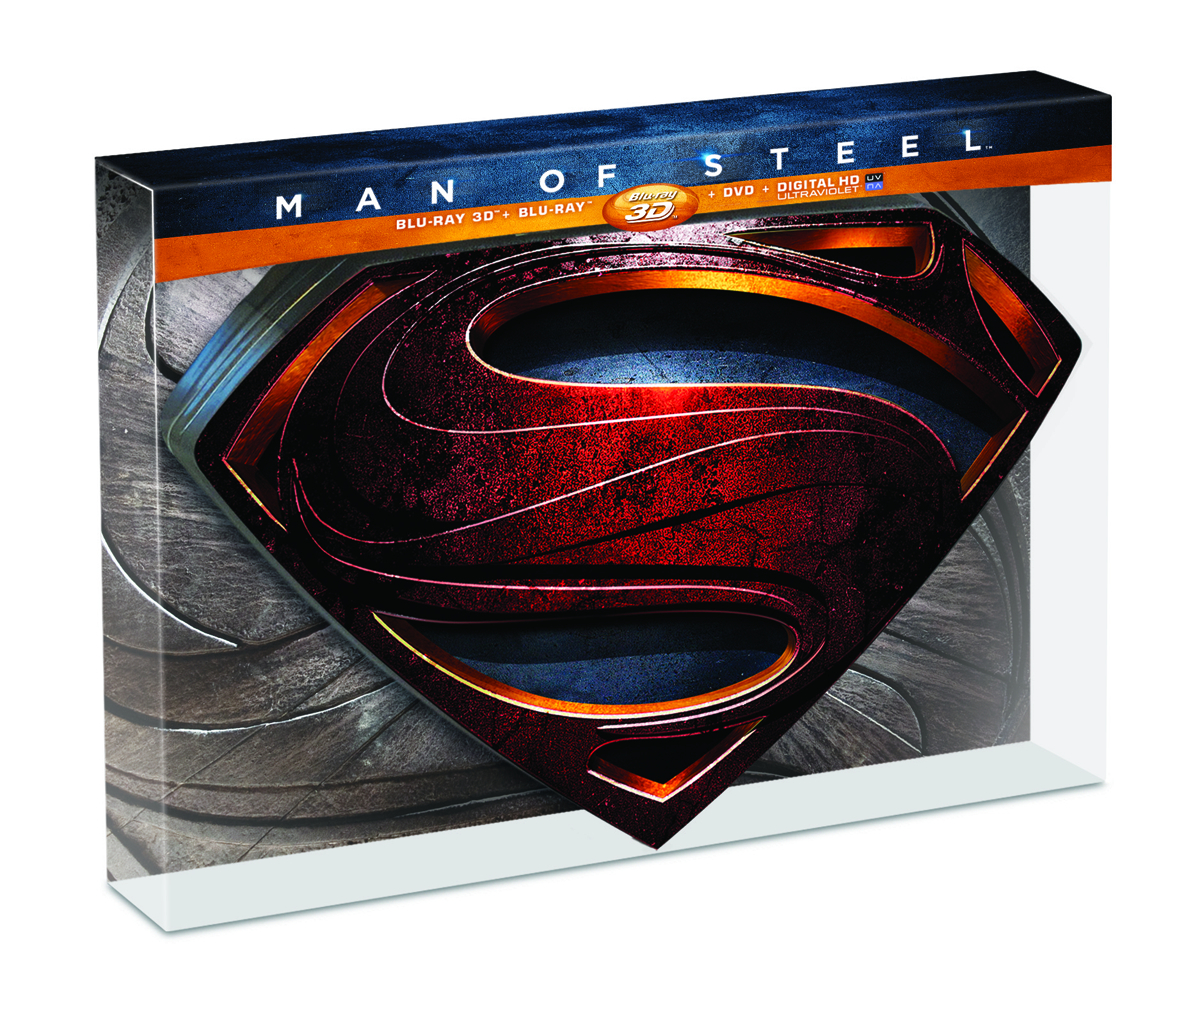 MAN OF STEEL 3D BD + BD + DVD COLL ED